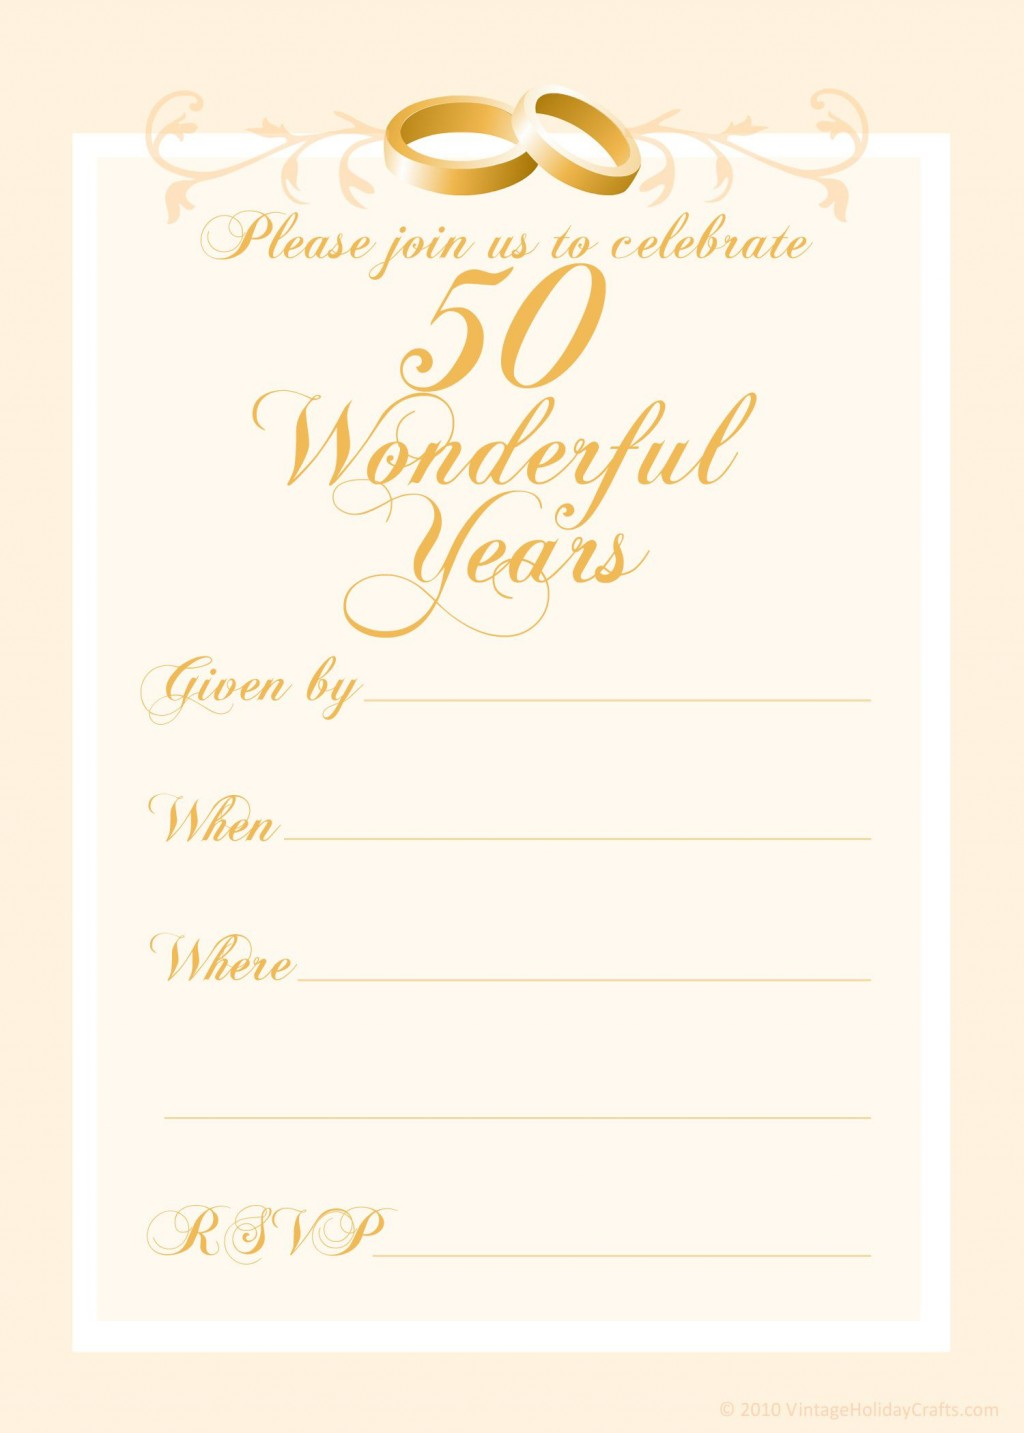 000 Magnificent 50th Anniversary Invitation Template Inspiration  Templates Wedding Free Download GoldenLarge